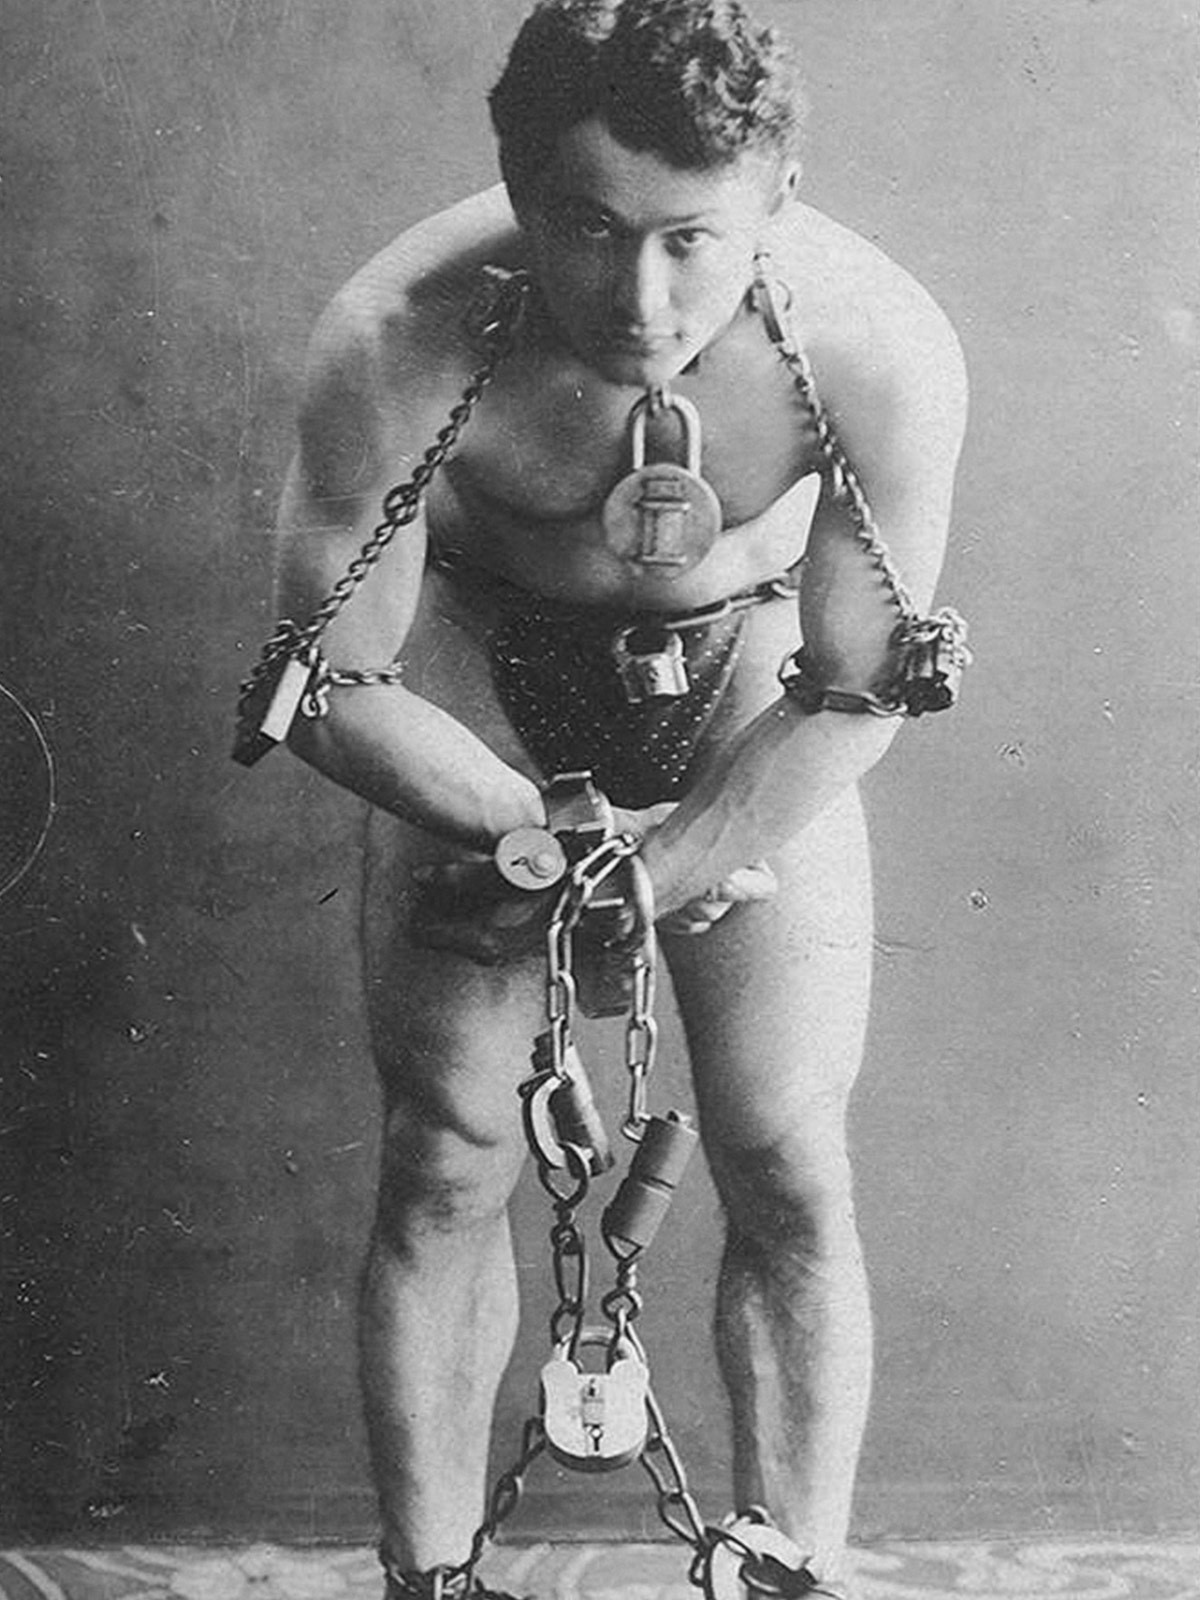 The complexities of locking oneself inside of a bag were widely likened to the feats of legendary escapologist Harry Houdini